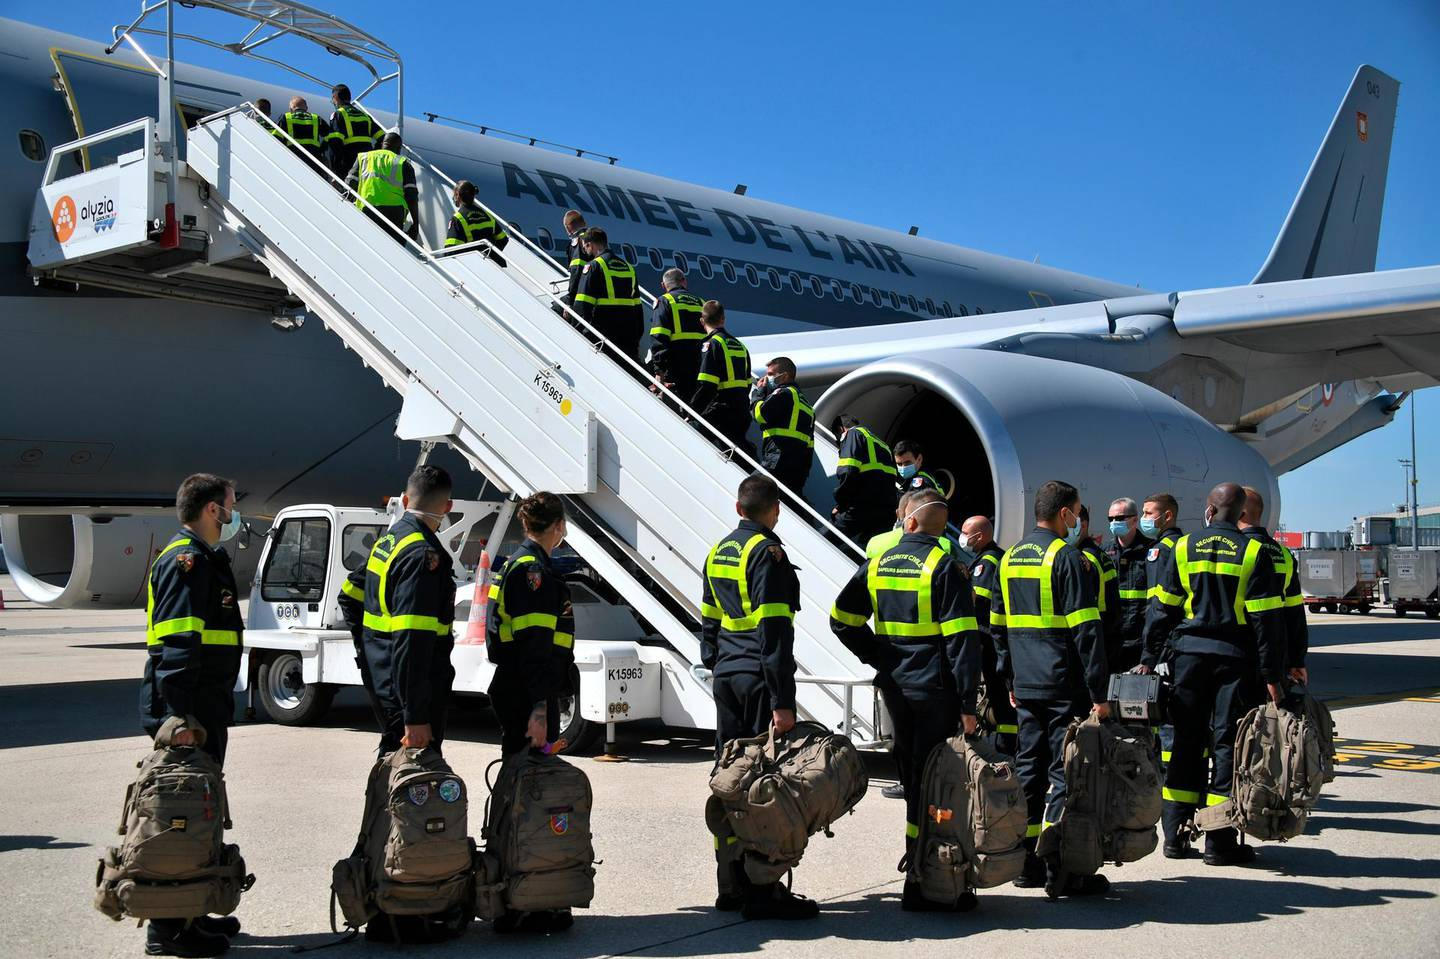 French Securite Civile rescue workers board a military plane at Roissy airport, north of Paris, Wednesday, Aug. 5, 2020. The French emergency workers traveling to Lebanon include members of a special unit with chemical and other technological expertise trained to intervene in damaged industrial sites. French President Emmanuel Macron announced he would fly to the shattered Lebanese capital, and two planeloads of French rescue workers and aid were expected to touch down on Wednesday afternoon. (Bertrand Guay, Pool via AP)